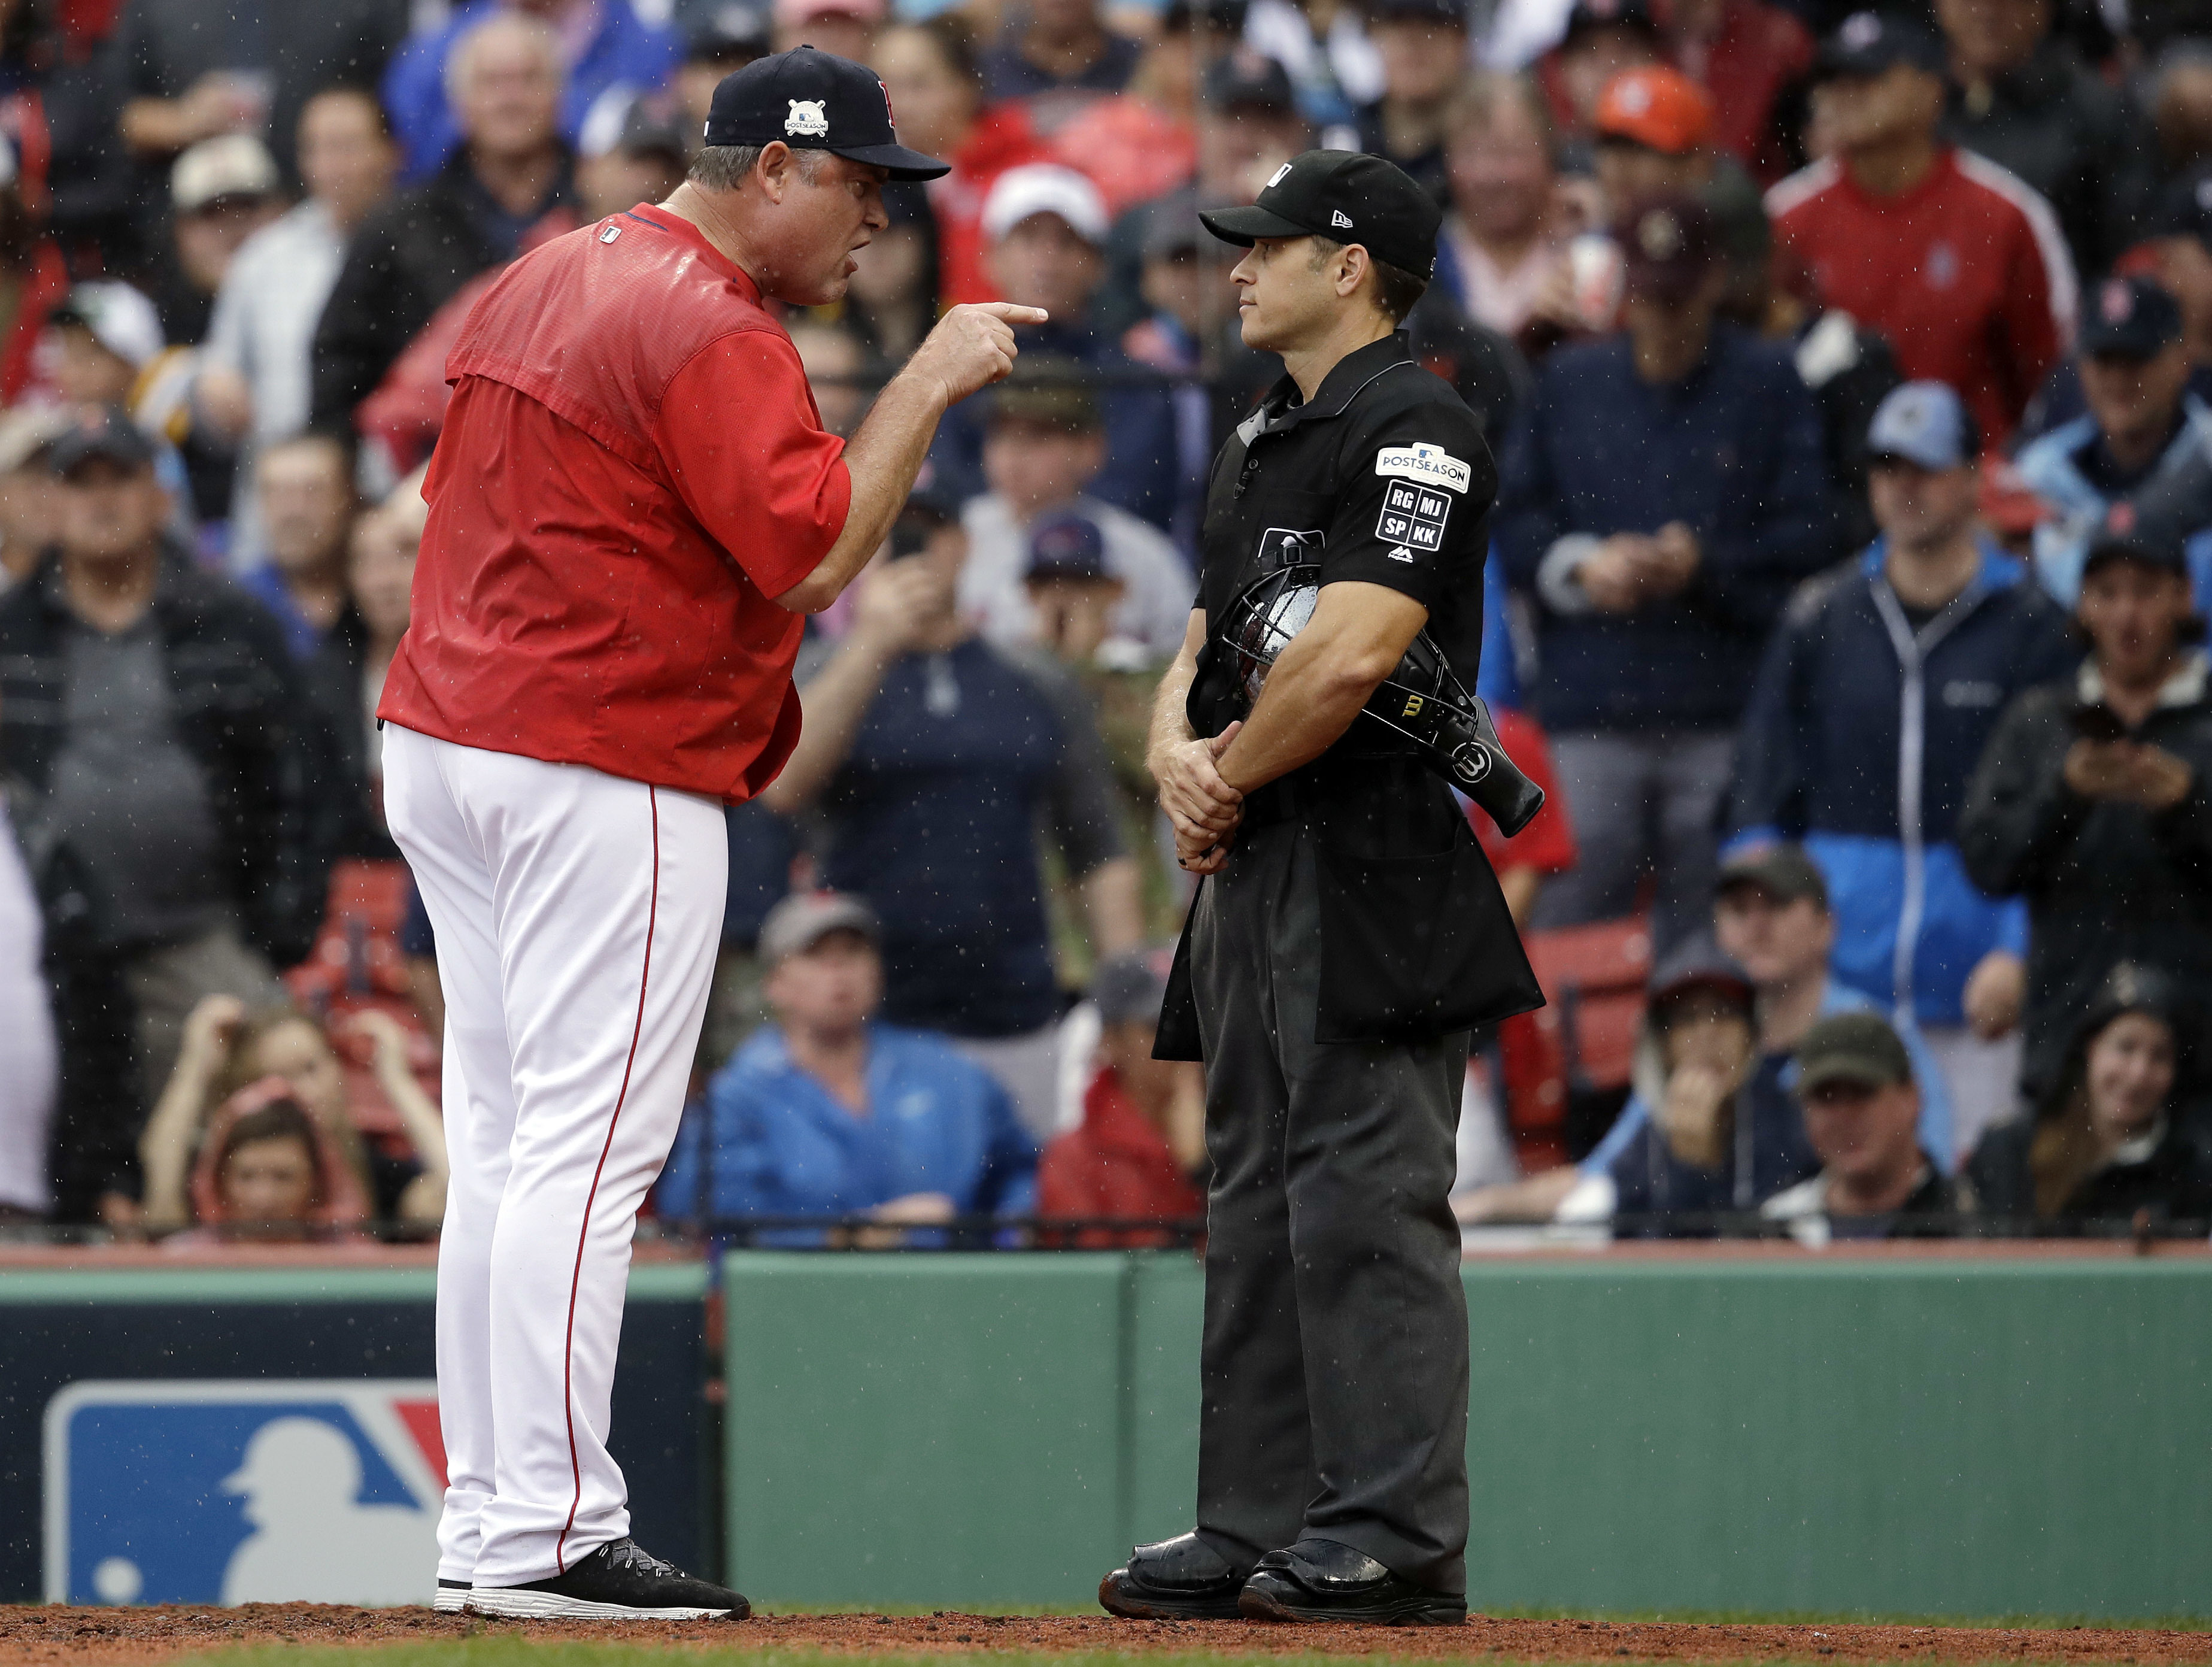 153e2678af7366 In this Monday, Oct. 9, 2017, photo, Boston Red Sox manager John Farrell,  left, argues with home plate umpire Mark Wegner, right, during the second  inning ...